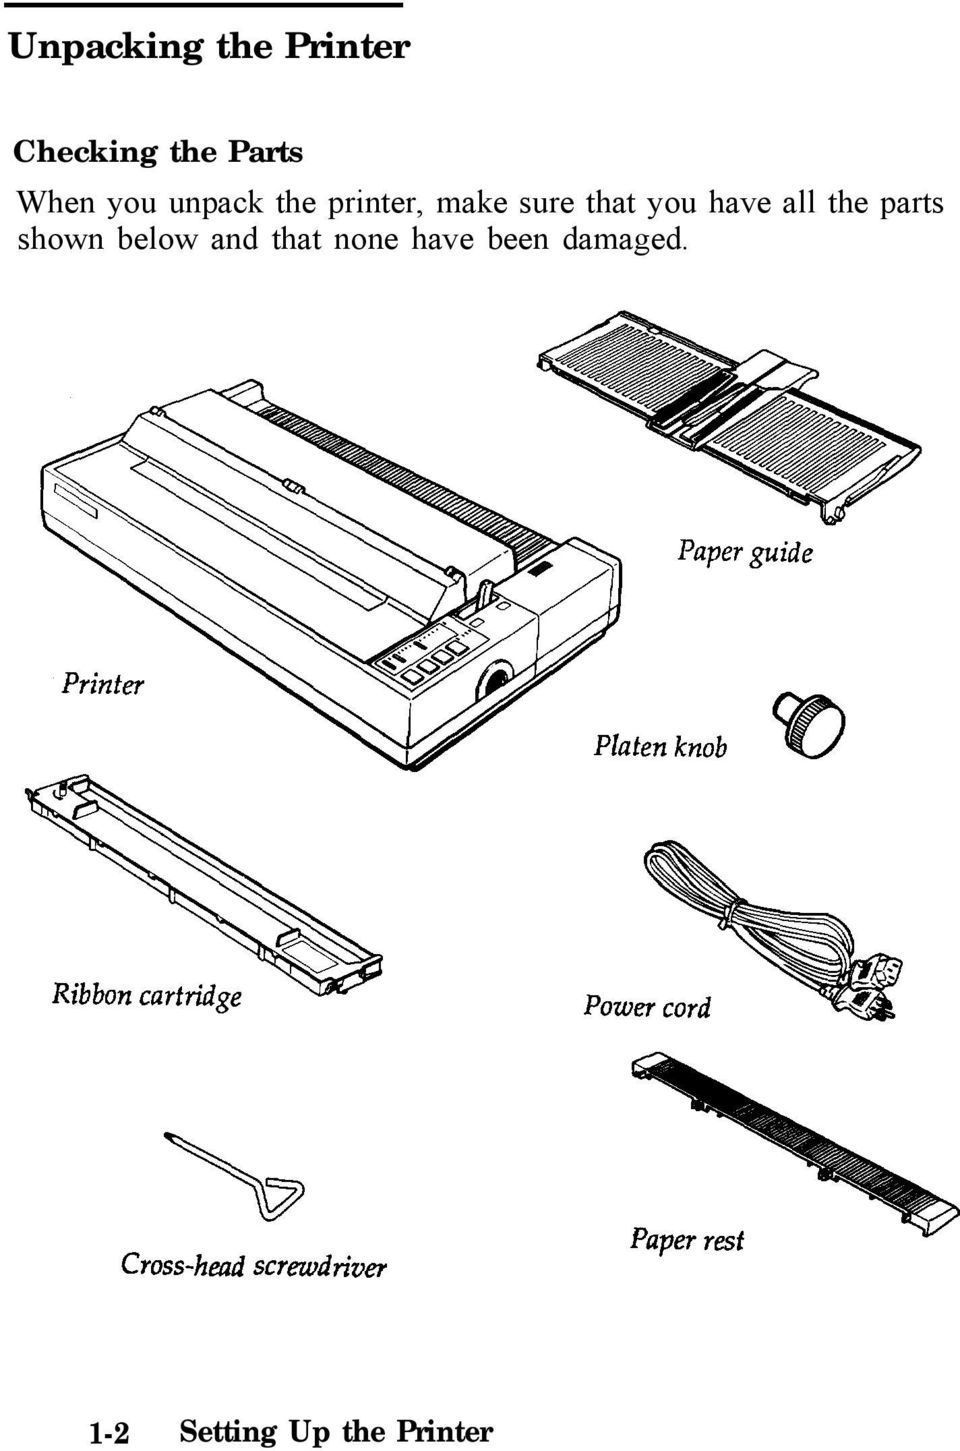 the parts shown below and that none have been